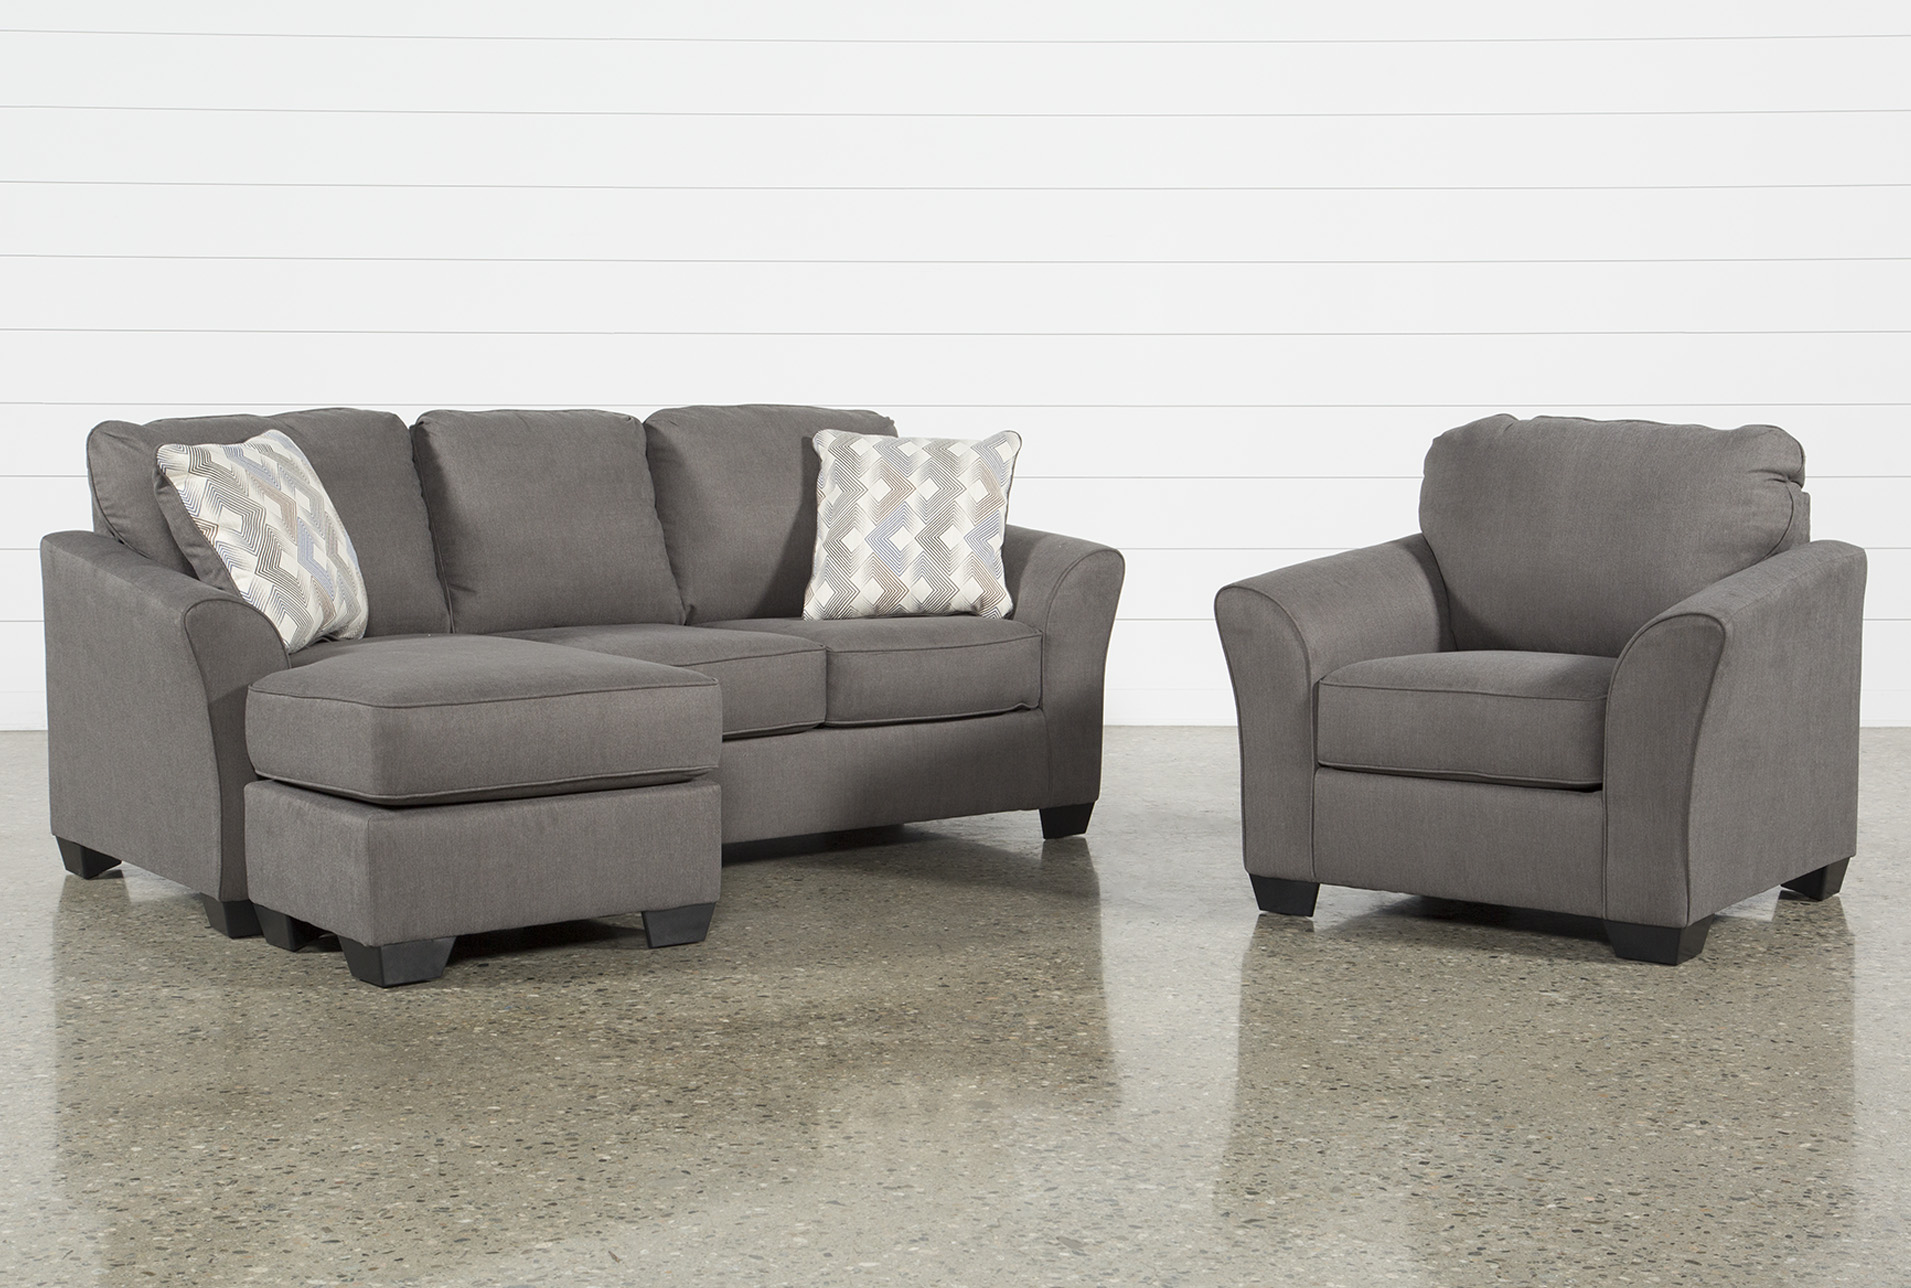 Arm Chairs Tucker 2 Piece Living Room Set With Queen Sleeper And Arm Chair